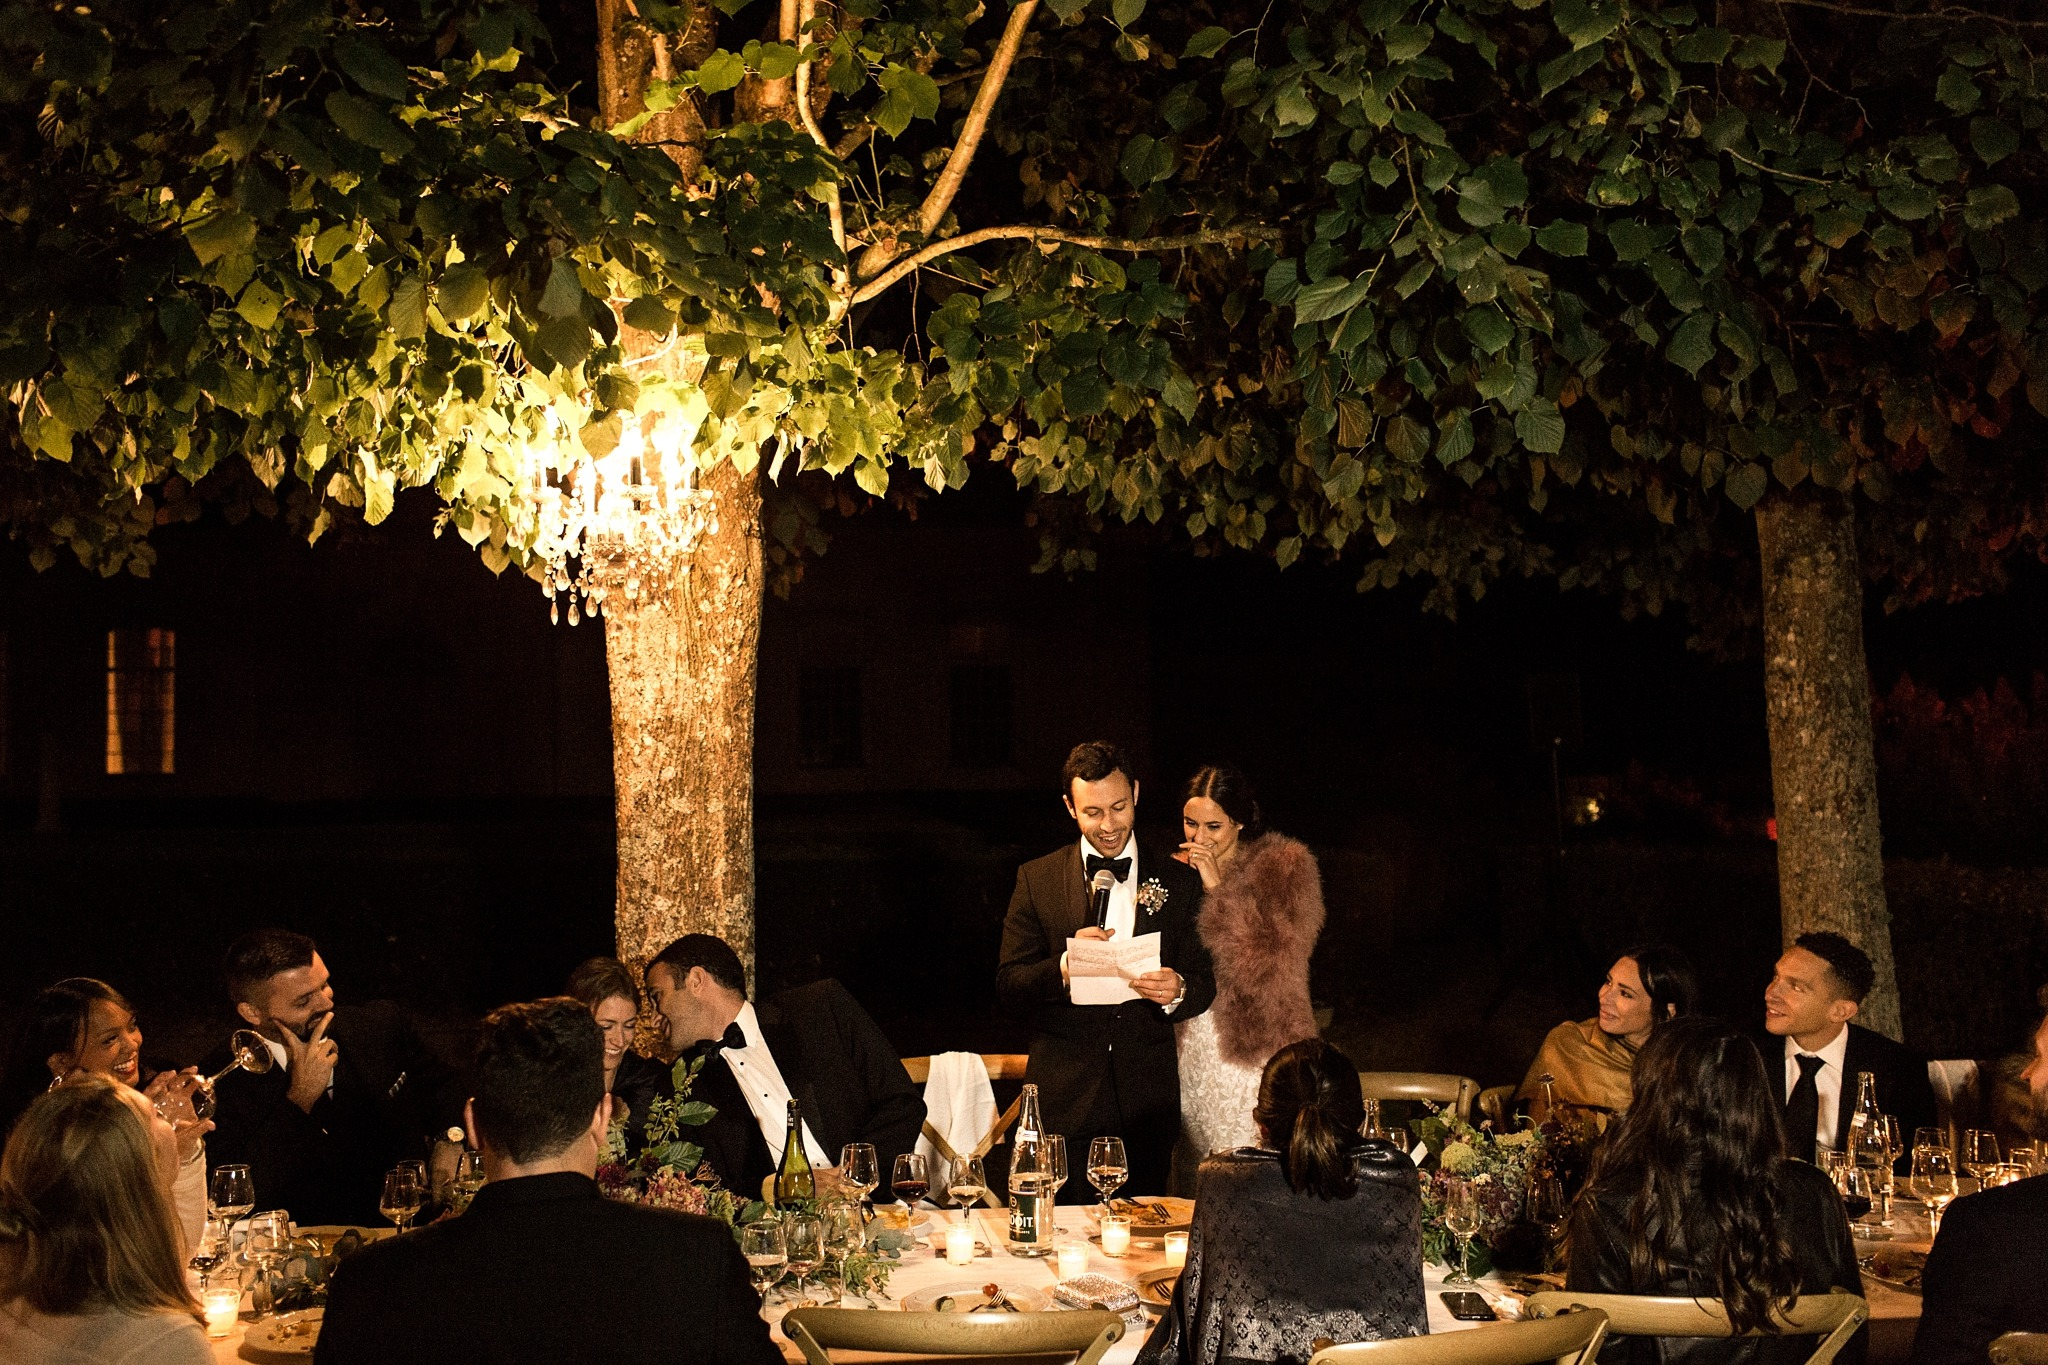 chateau-wedding-france-chanel-eric-as-seen-on-vogue-with-sarah-falugo-photographer_0181